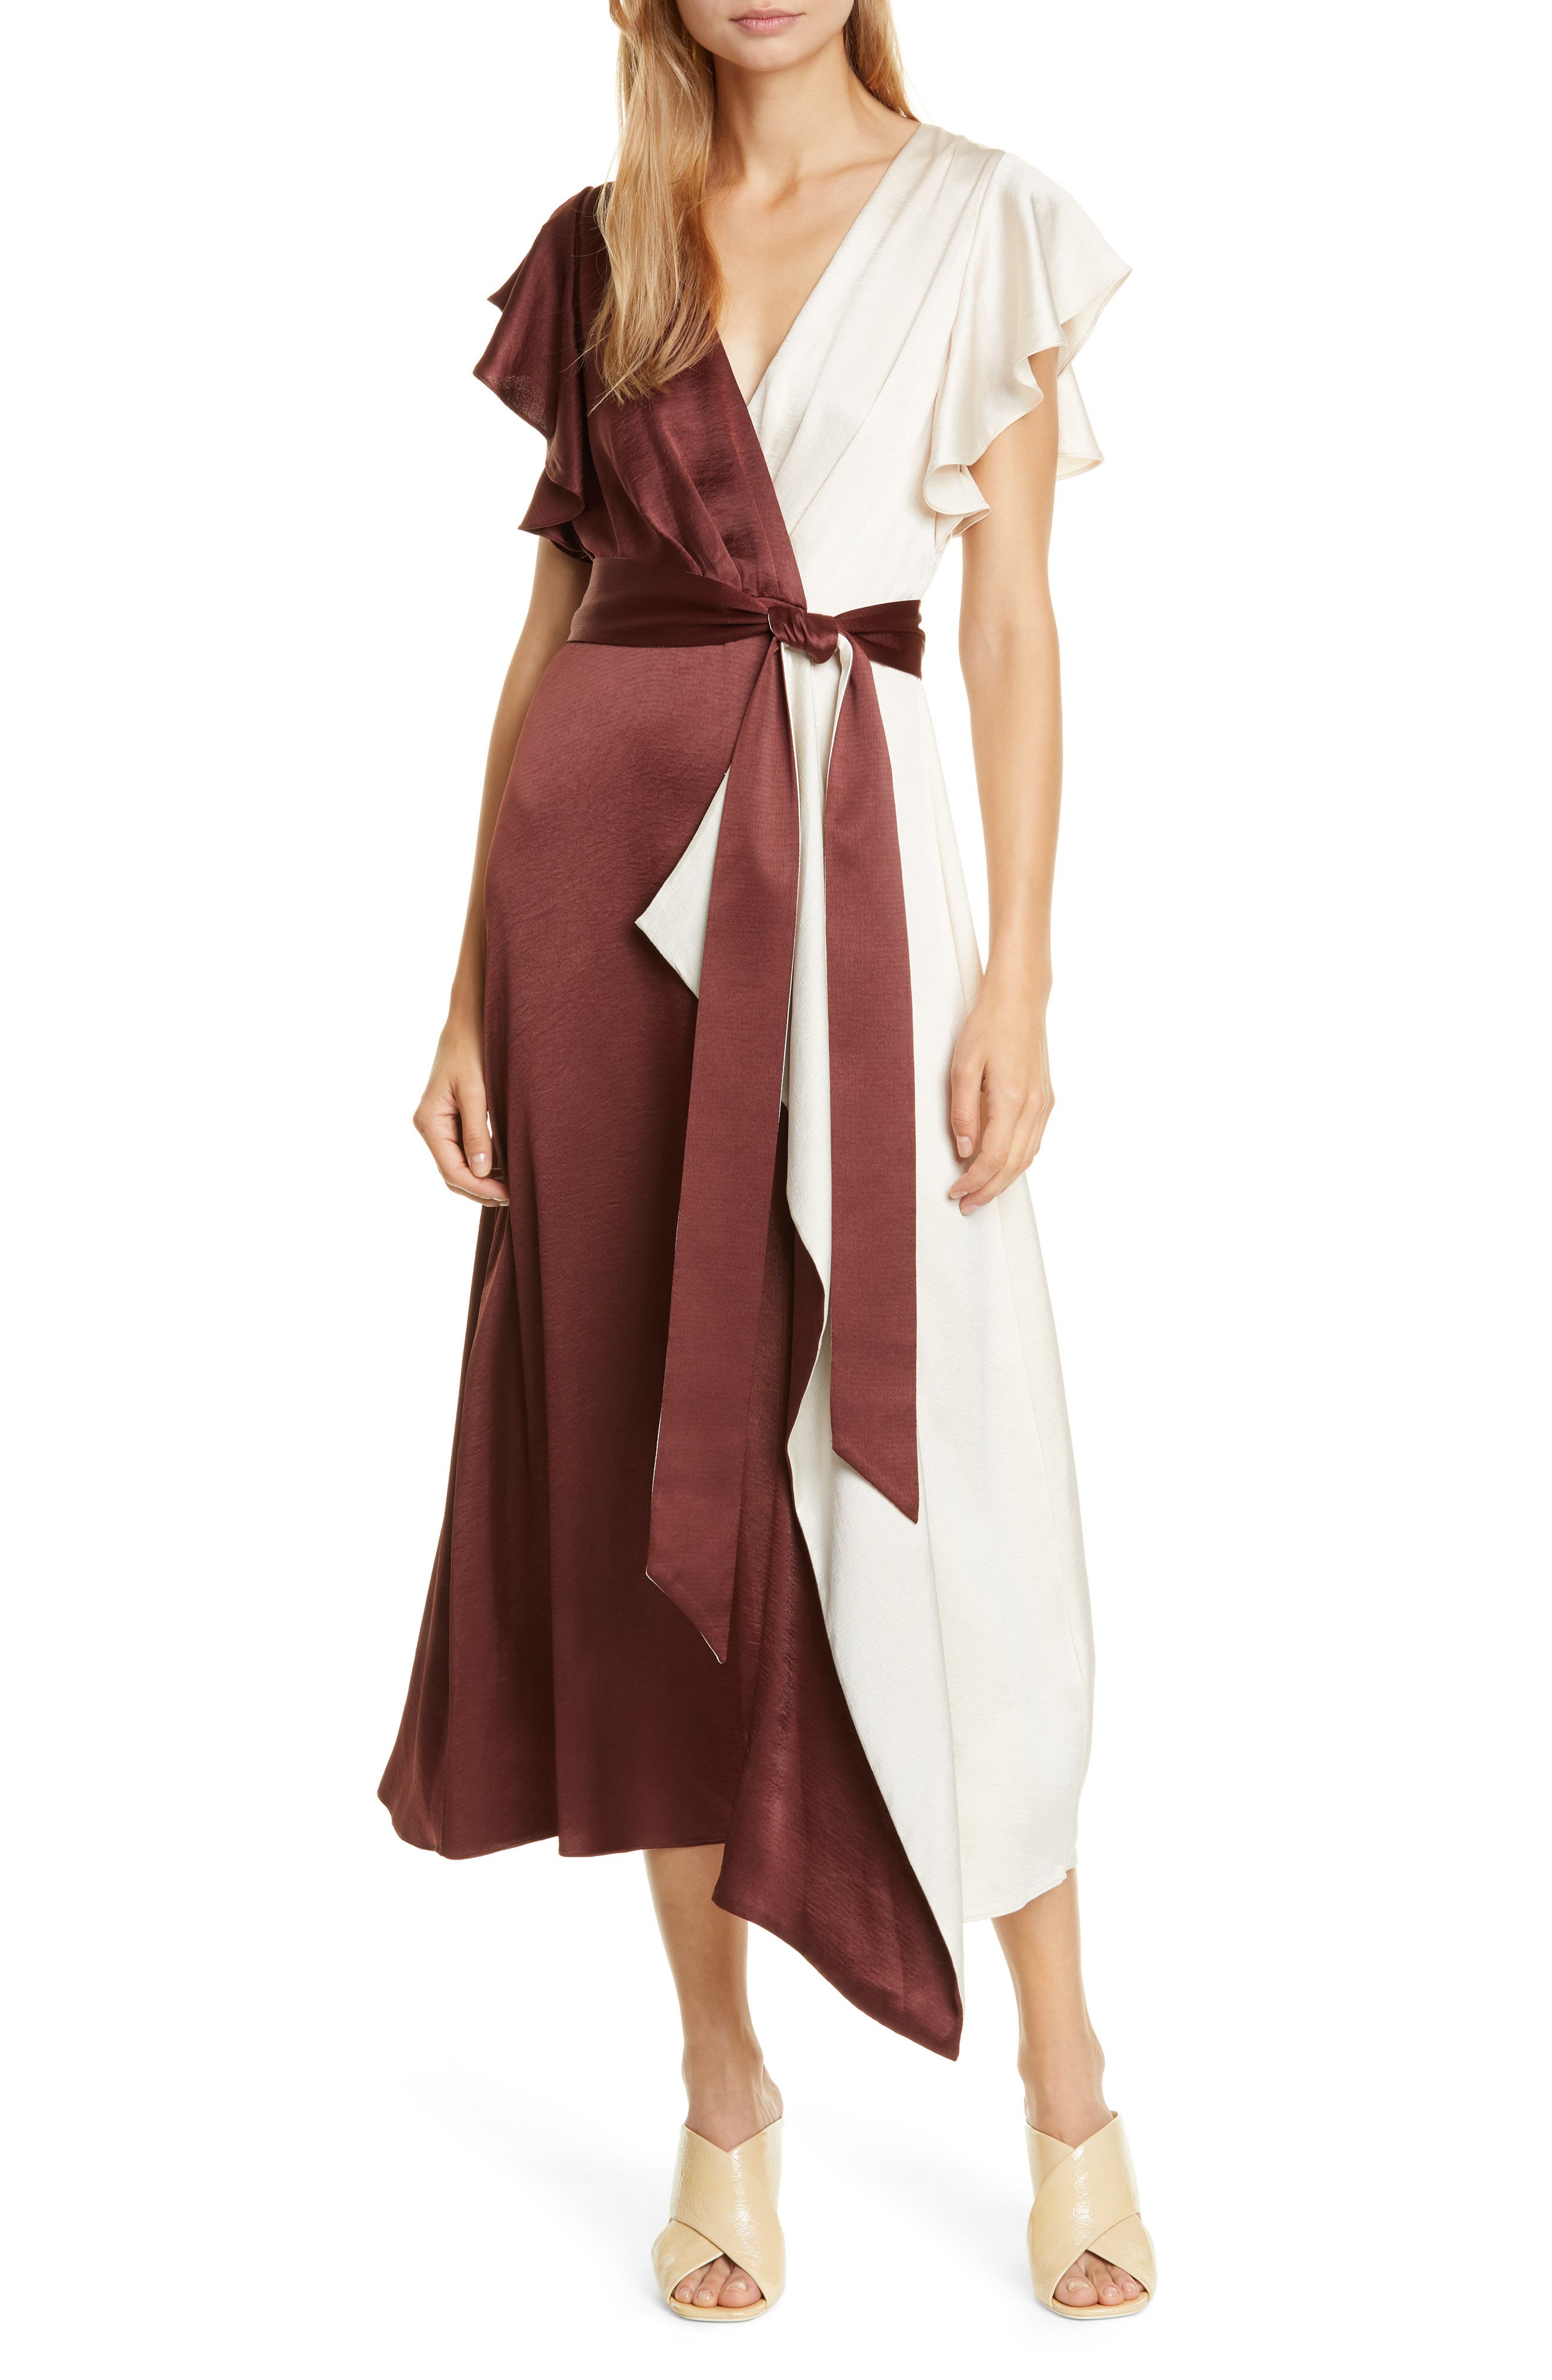 70s Prom, Formal, Evening, Party Dresses Womens Kate Spade New York Colorblock Faux Wrap Midi Dress $478.00 AT vintagedancer.com